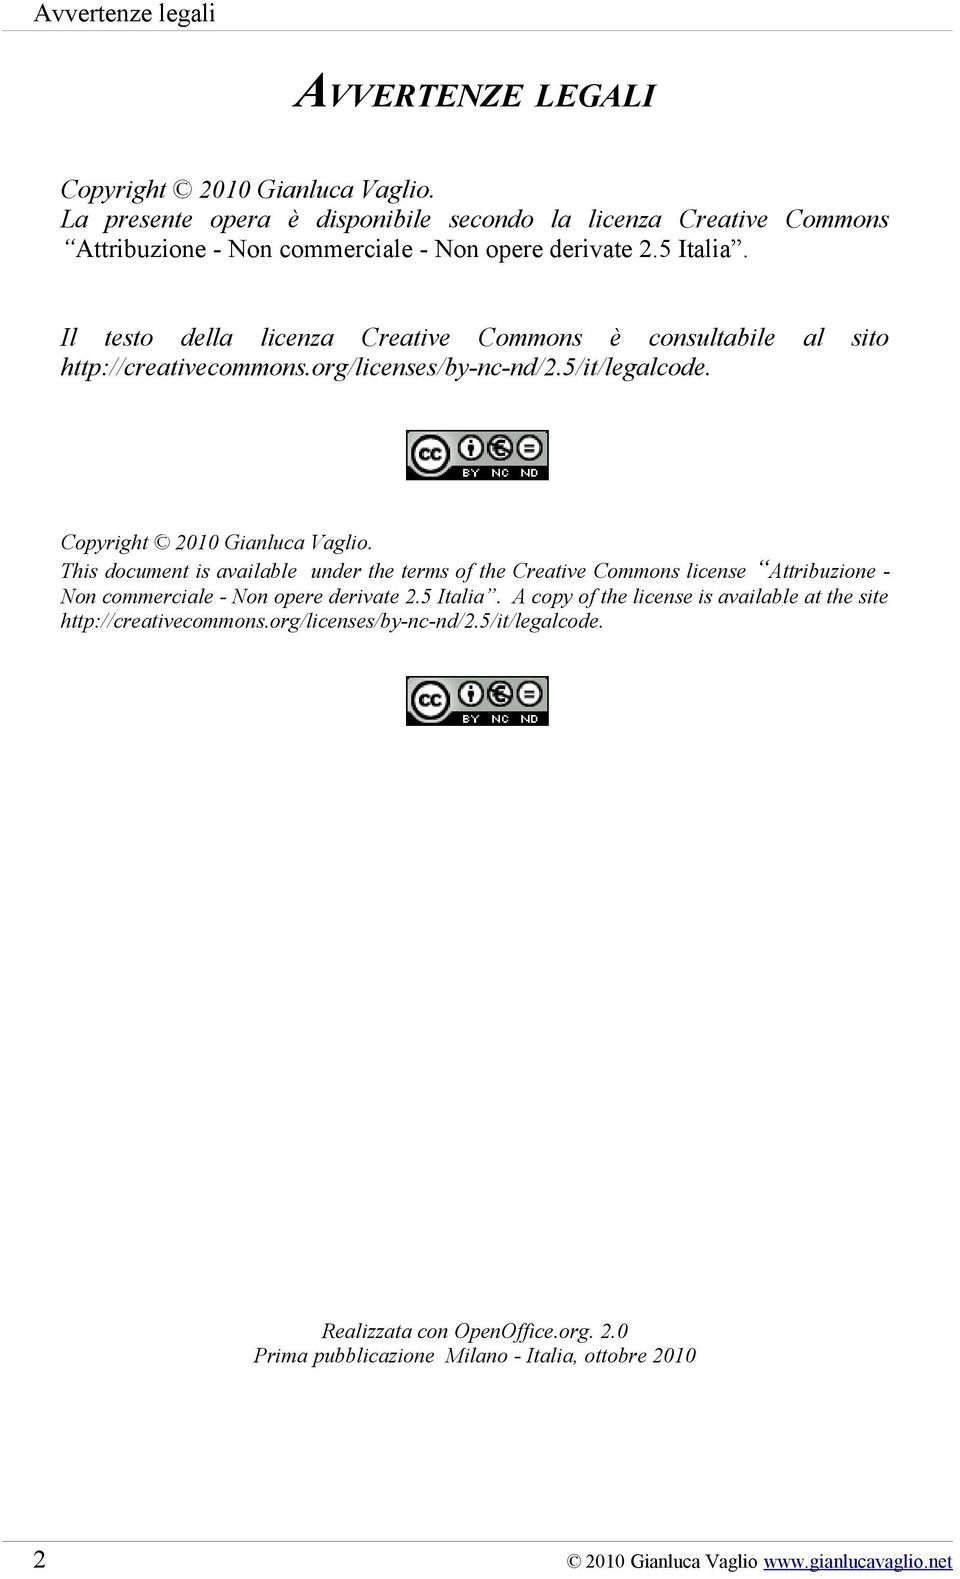 Il testo della licenza Creative Commons è consultabile al sito http://creativecommons.org/licenses/by-nc-nd/2.5/it/legalcode. Copyright 2010 Gianluca Vaglio.